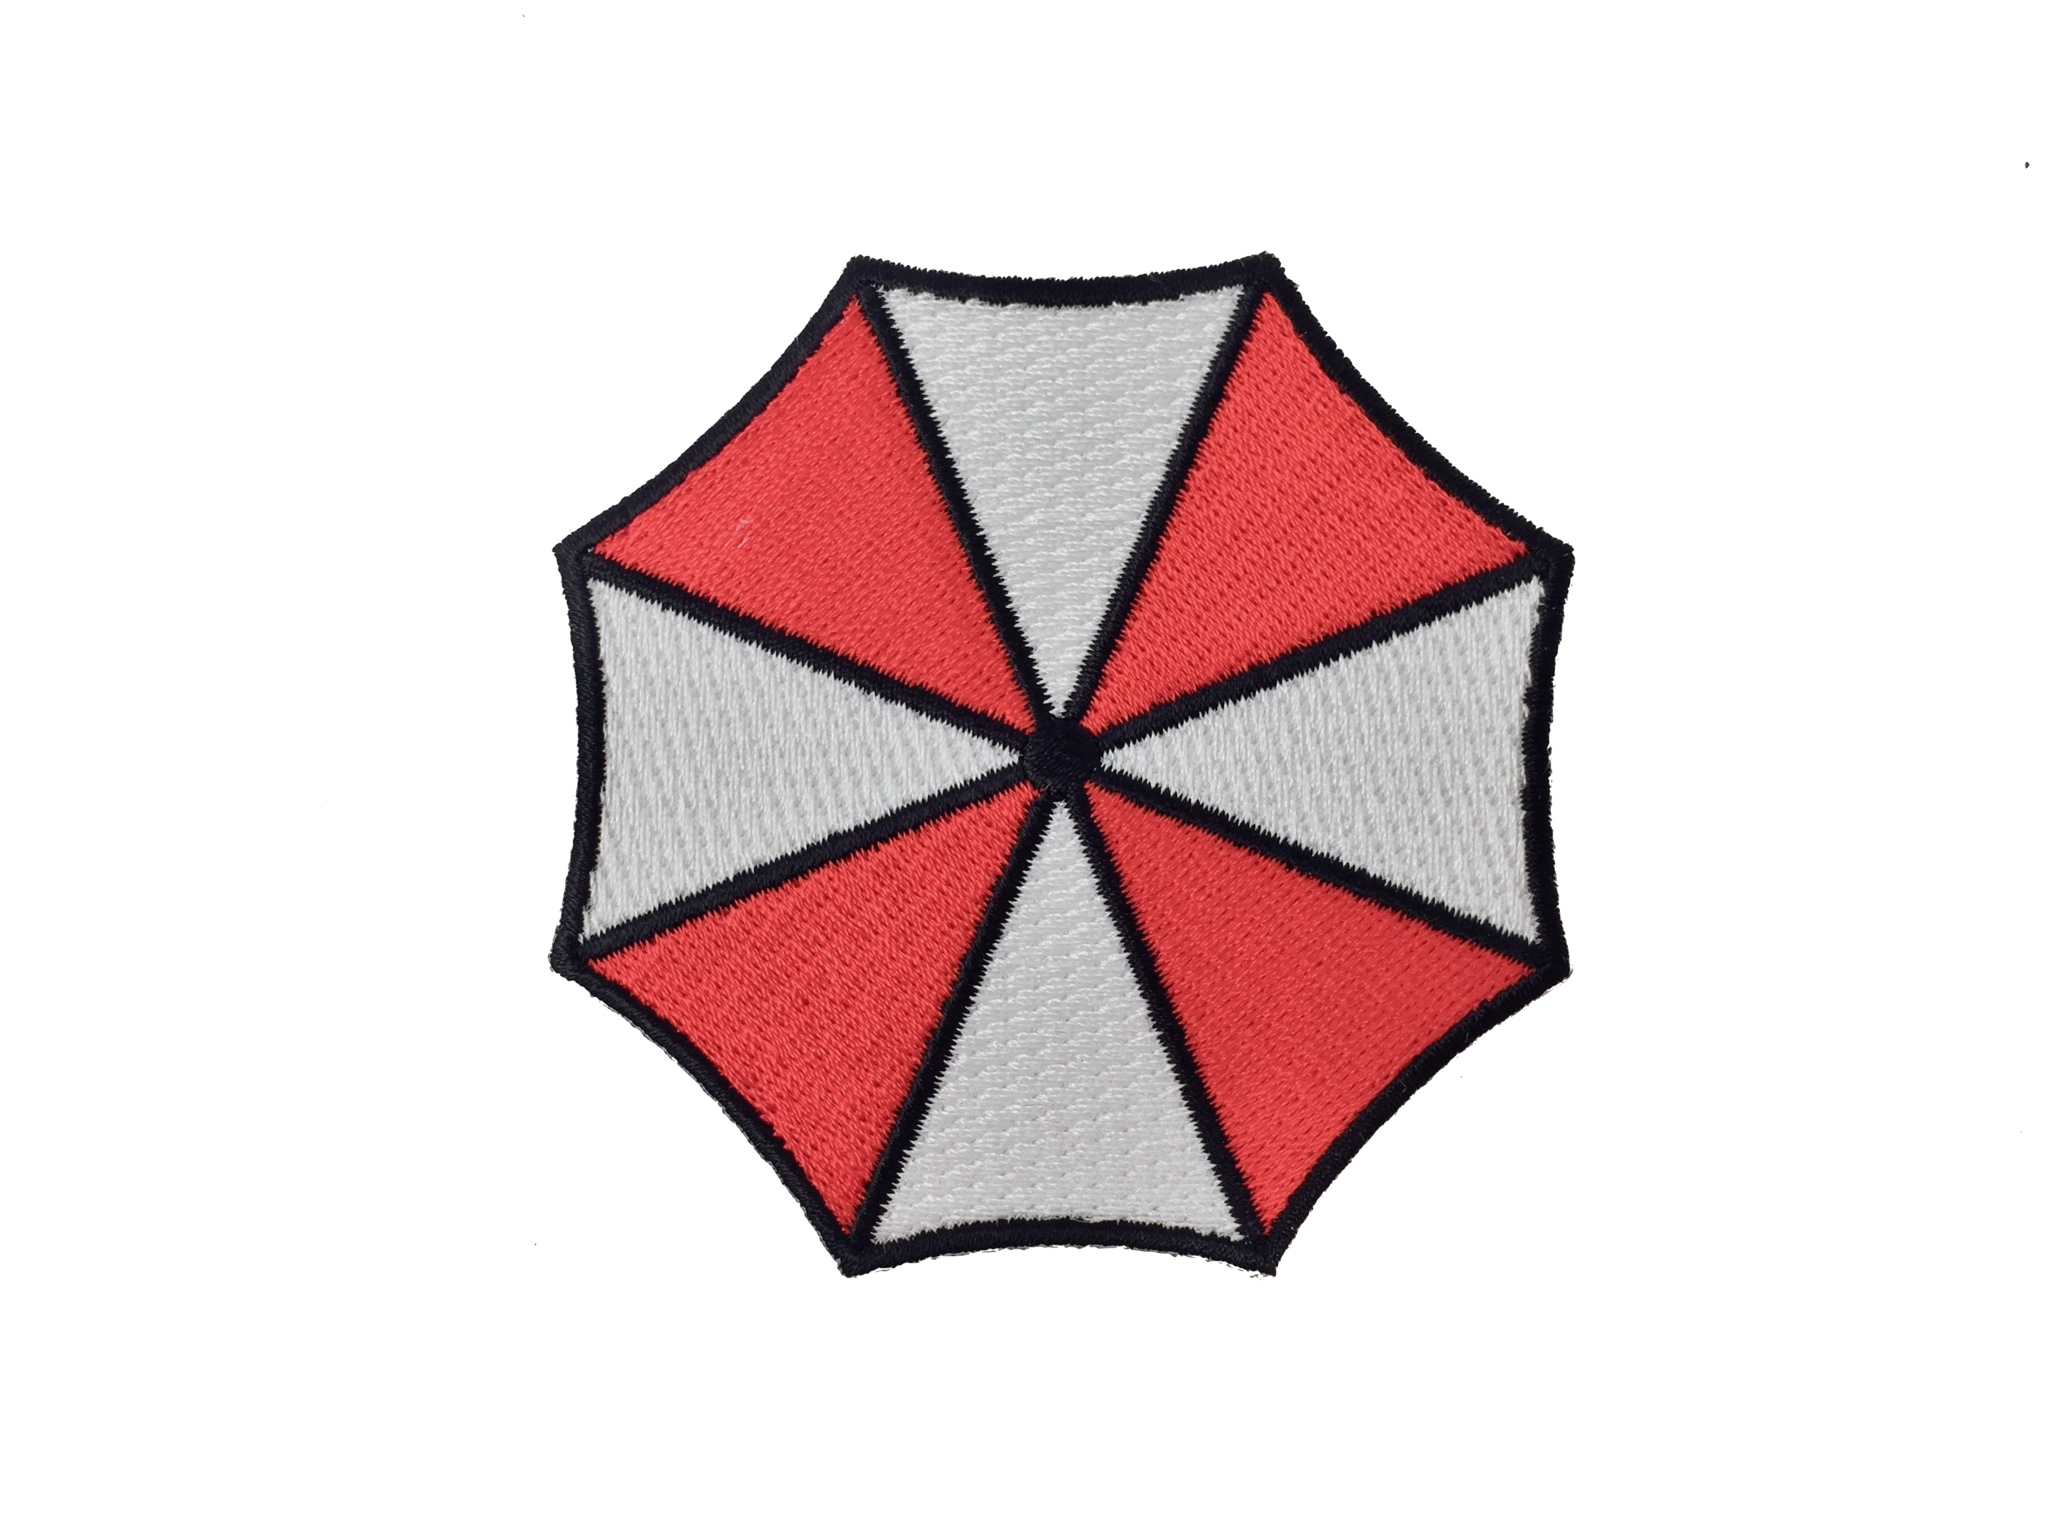 Resident evil umbrella logo png. Corporation iron on patch